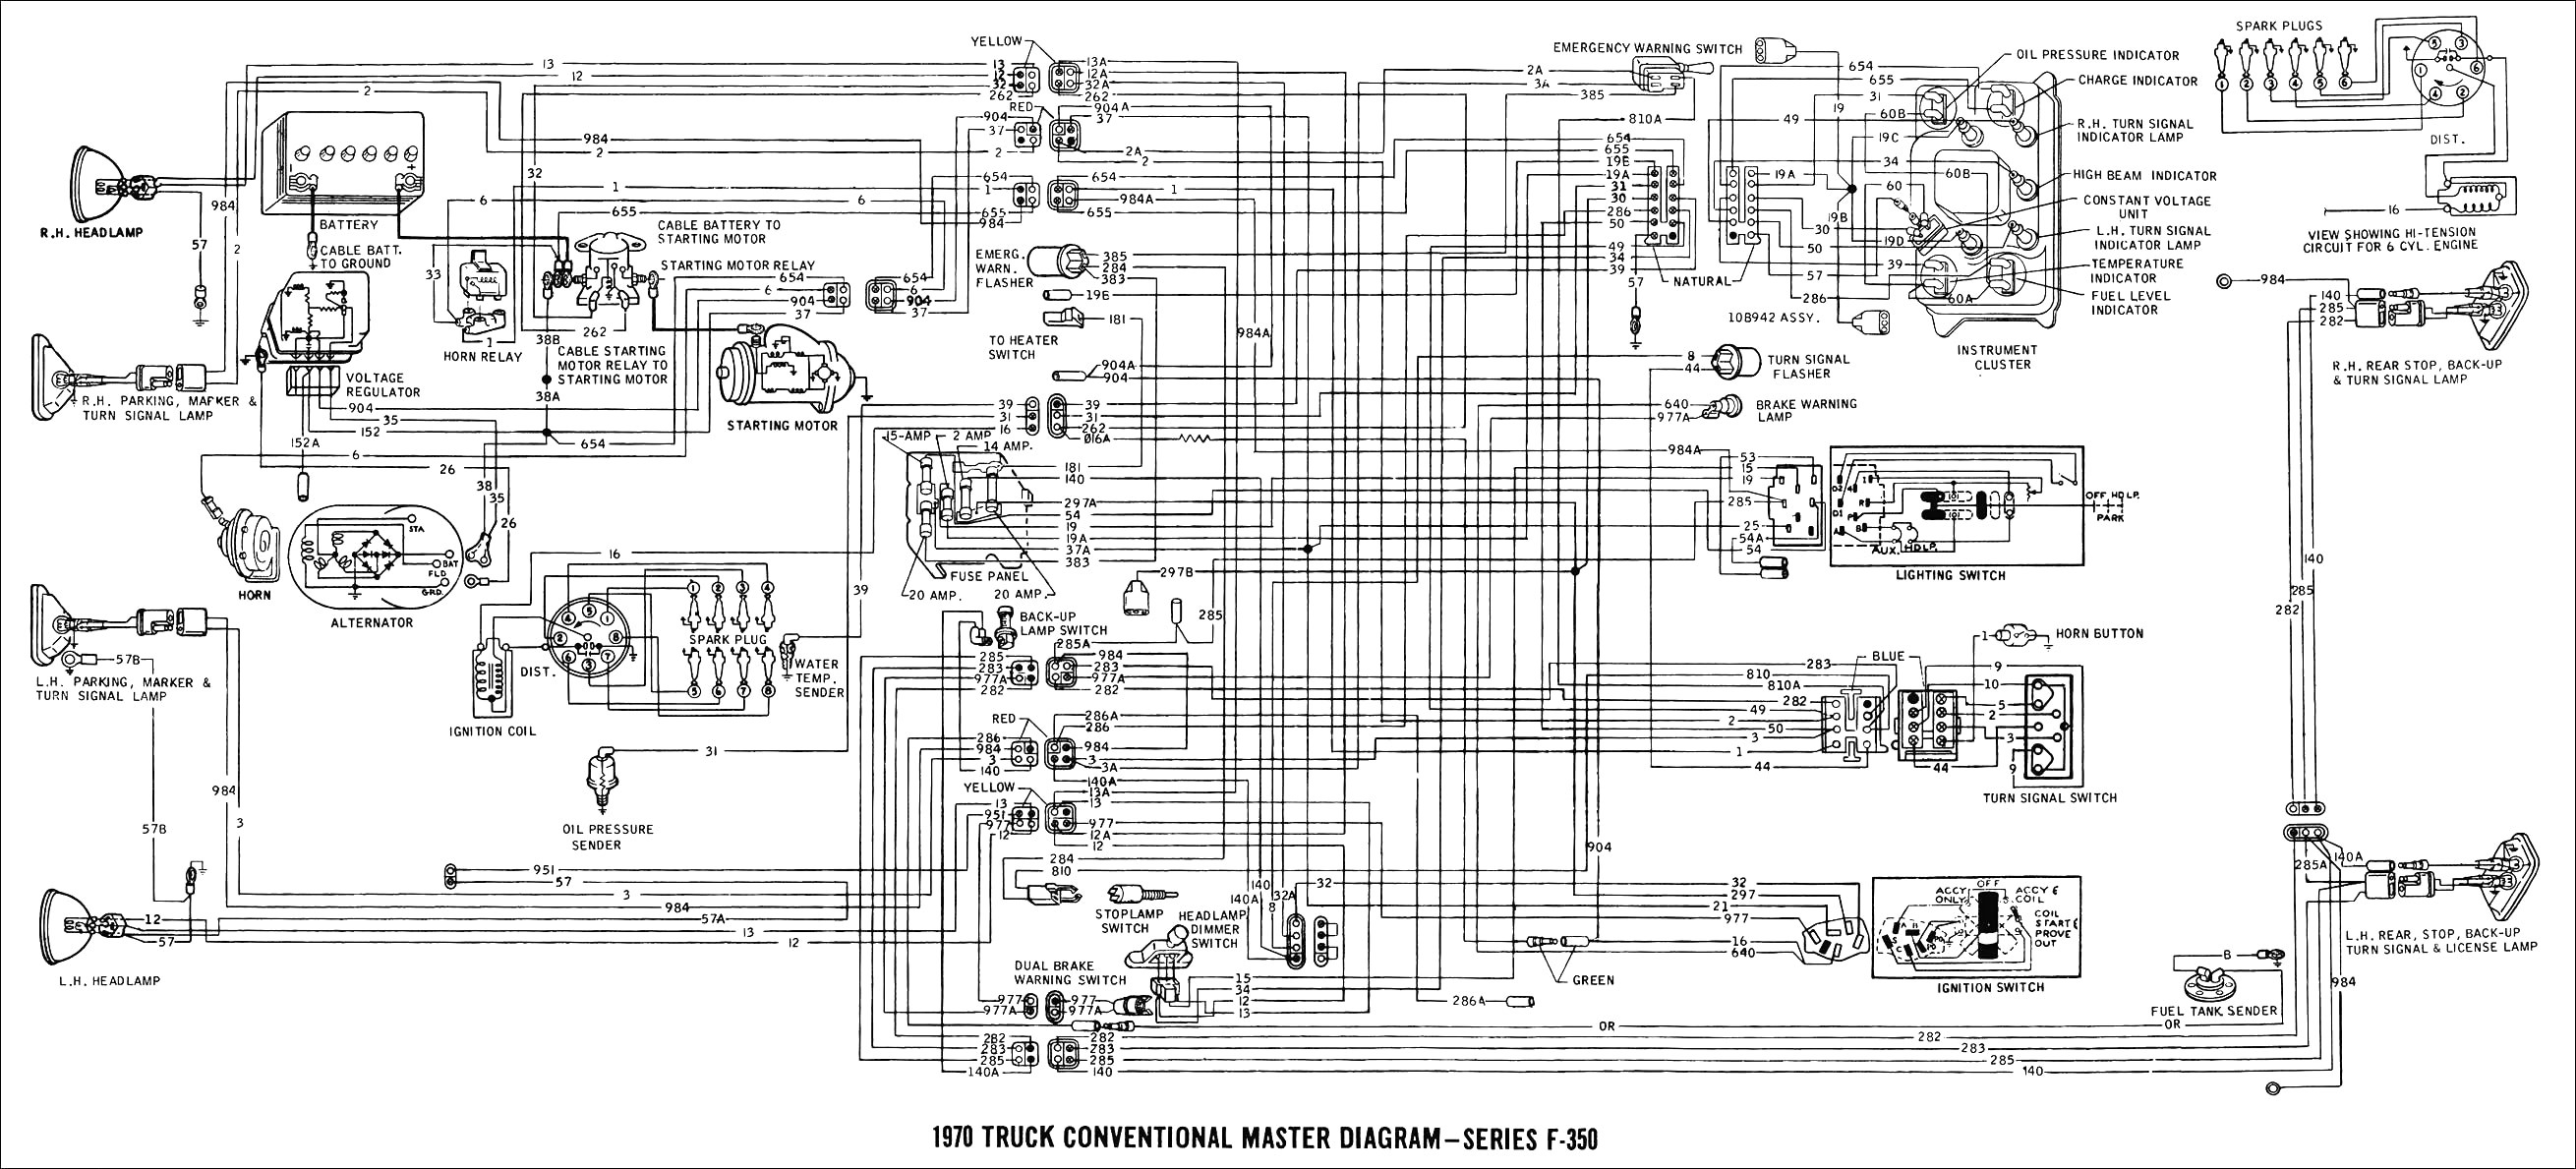 1996 Ford Ranger Wiring Diagram To 2012 03 23 96 4 0 Simple F250 Trailer